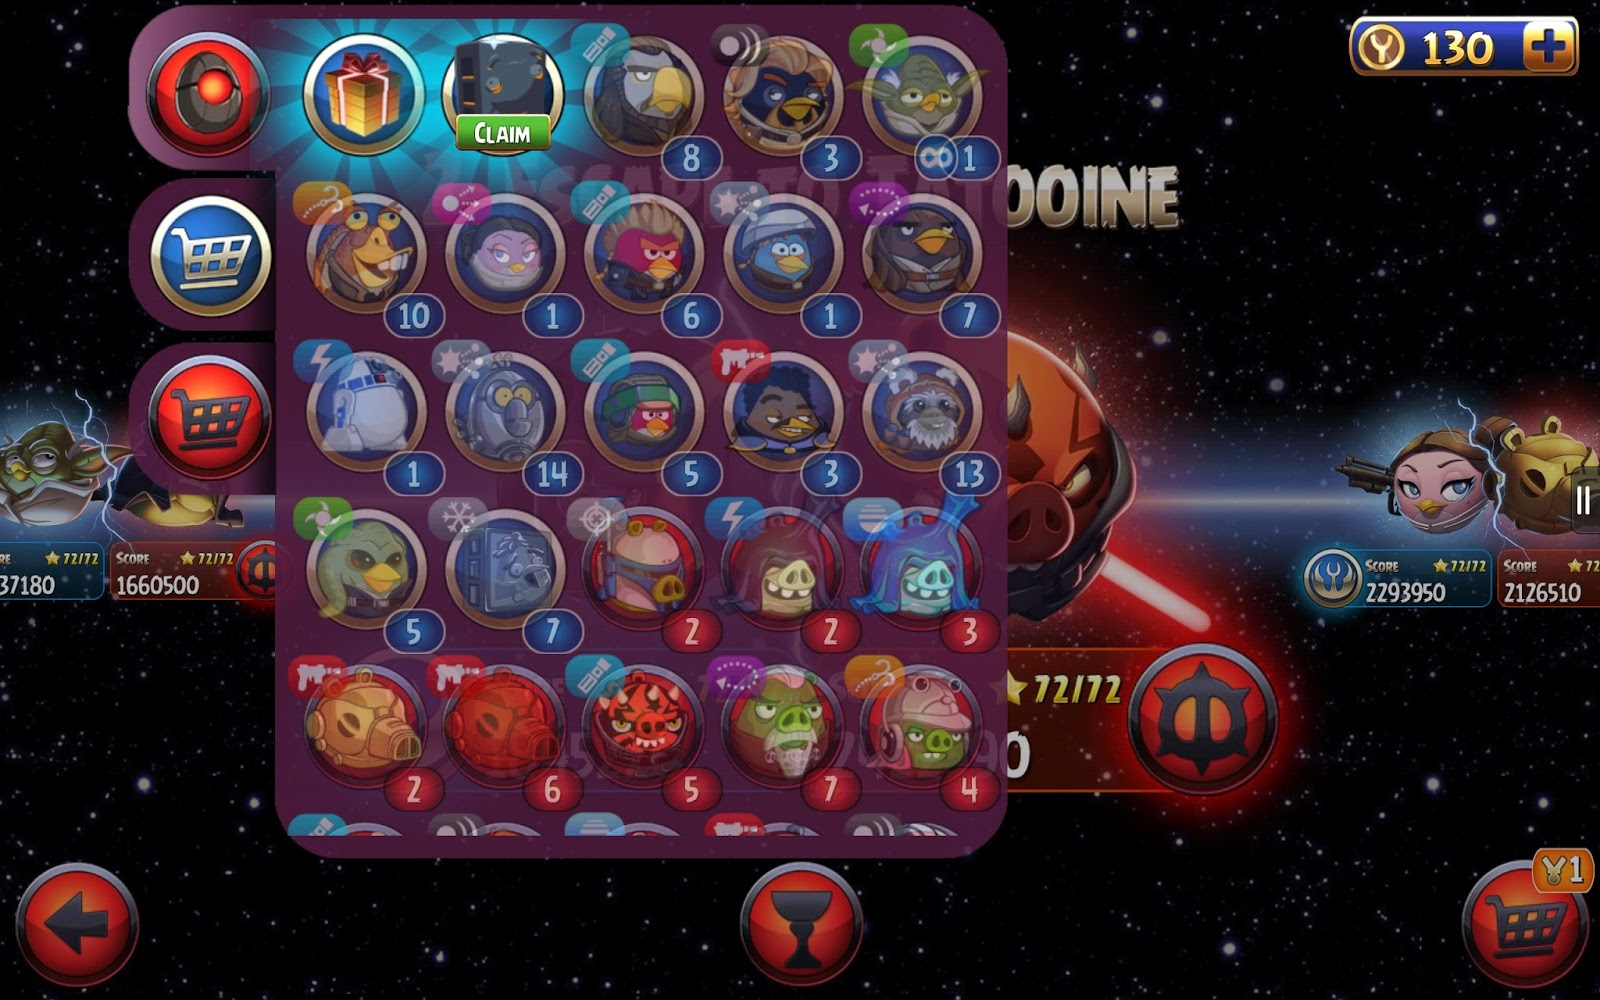 Angry birds star wars 2 full crack pc clixwarez for Motor wars 2 hacked